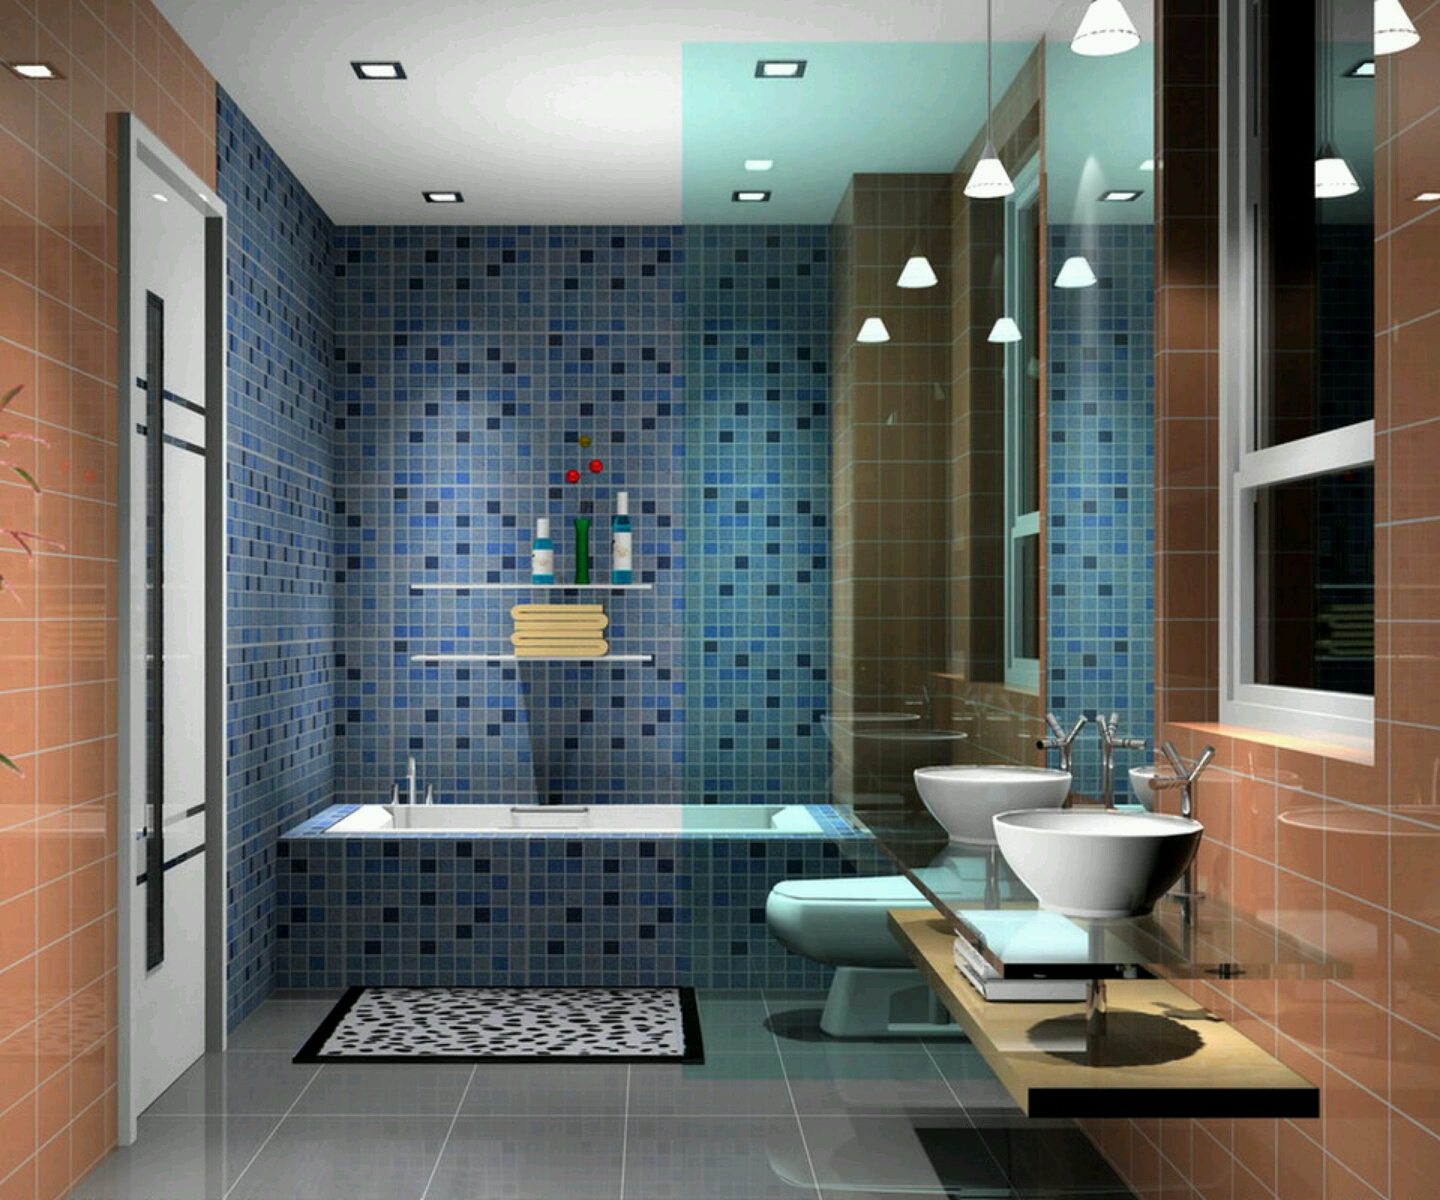 New home designs latest modern bathrooms best designs ideas for New model bathroom design